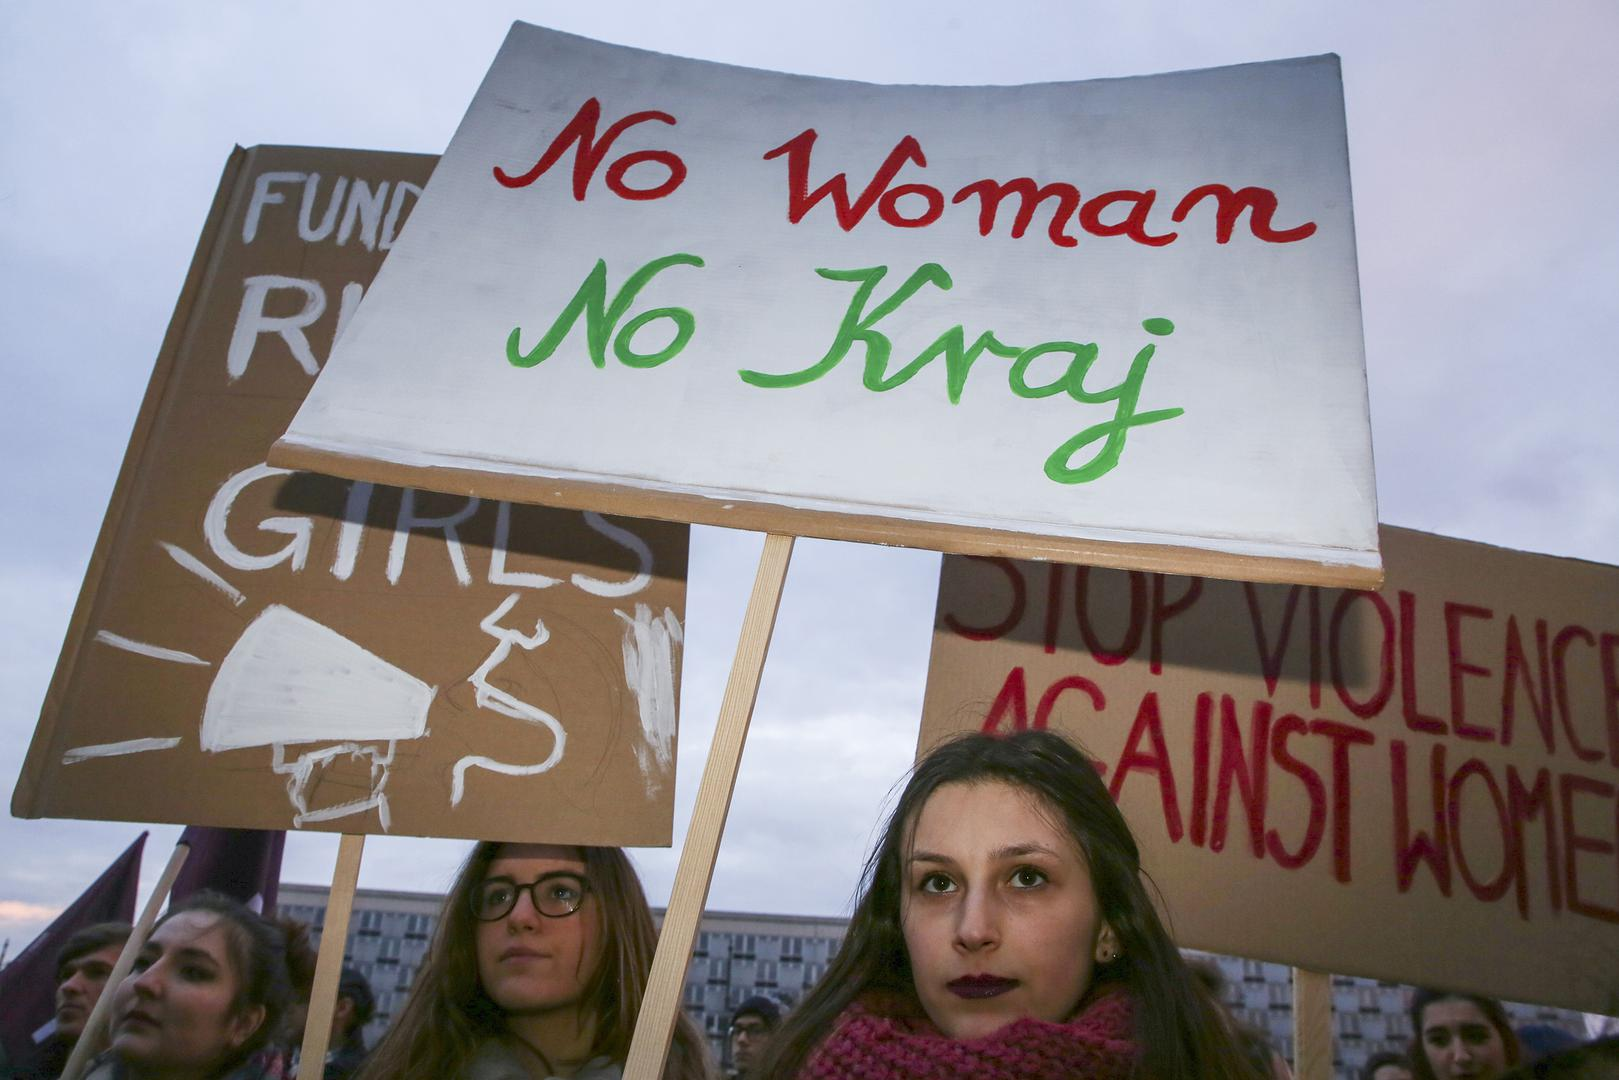 """Women's rights supporters at a demonstration for International Women's Day in Krakow, Poland, on March 8, 2018. The center sign uses the slogan """"No Woman, No Country."""""""